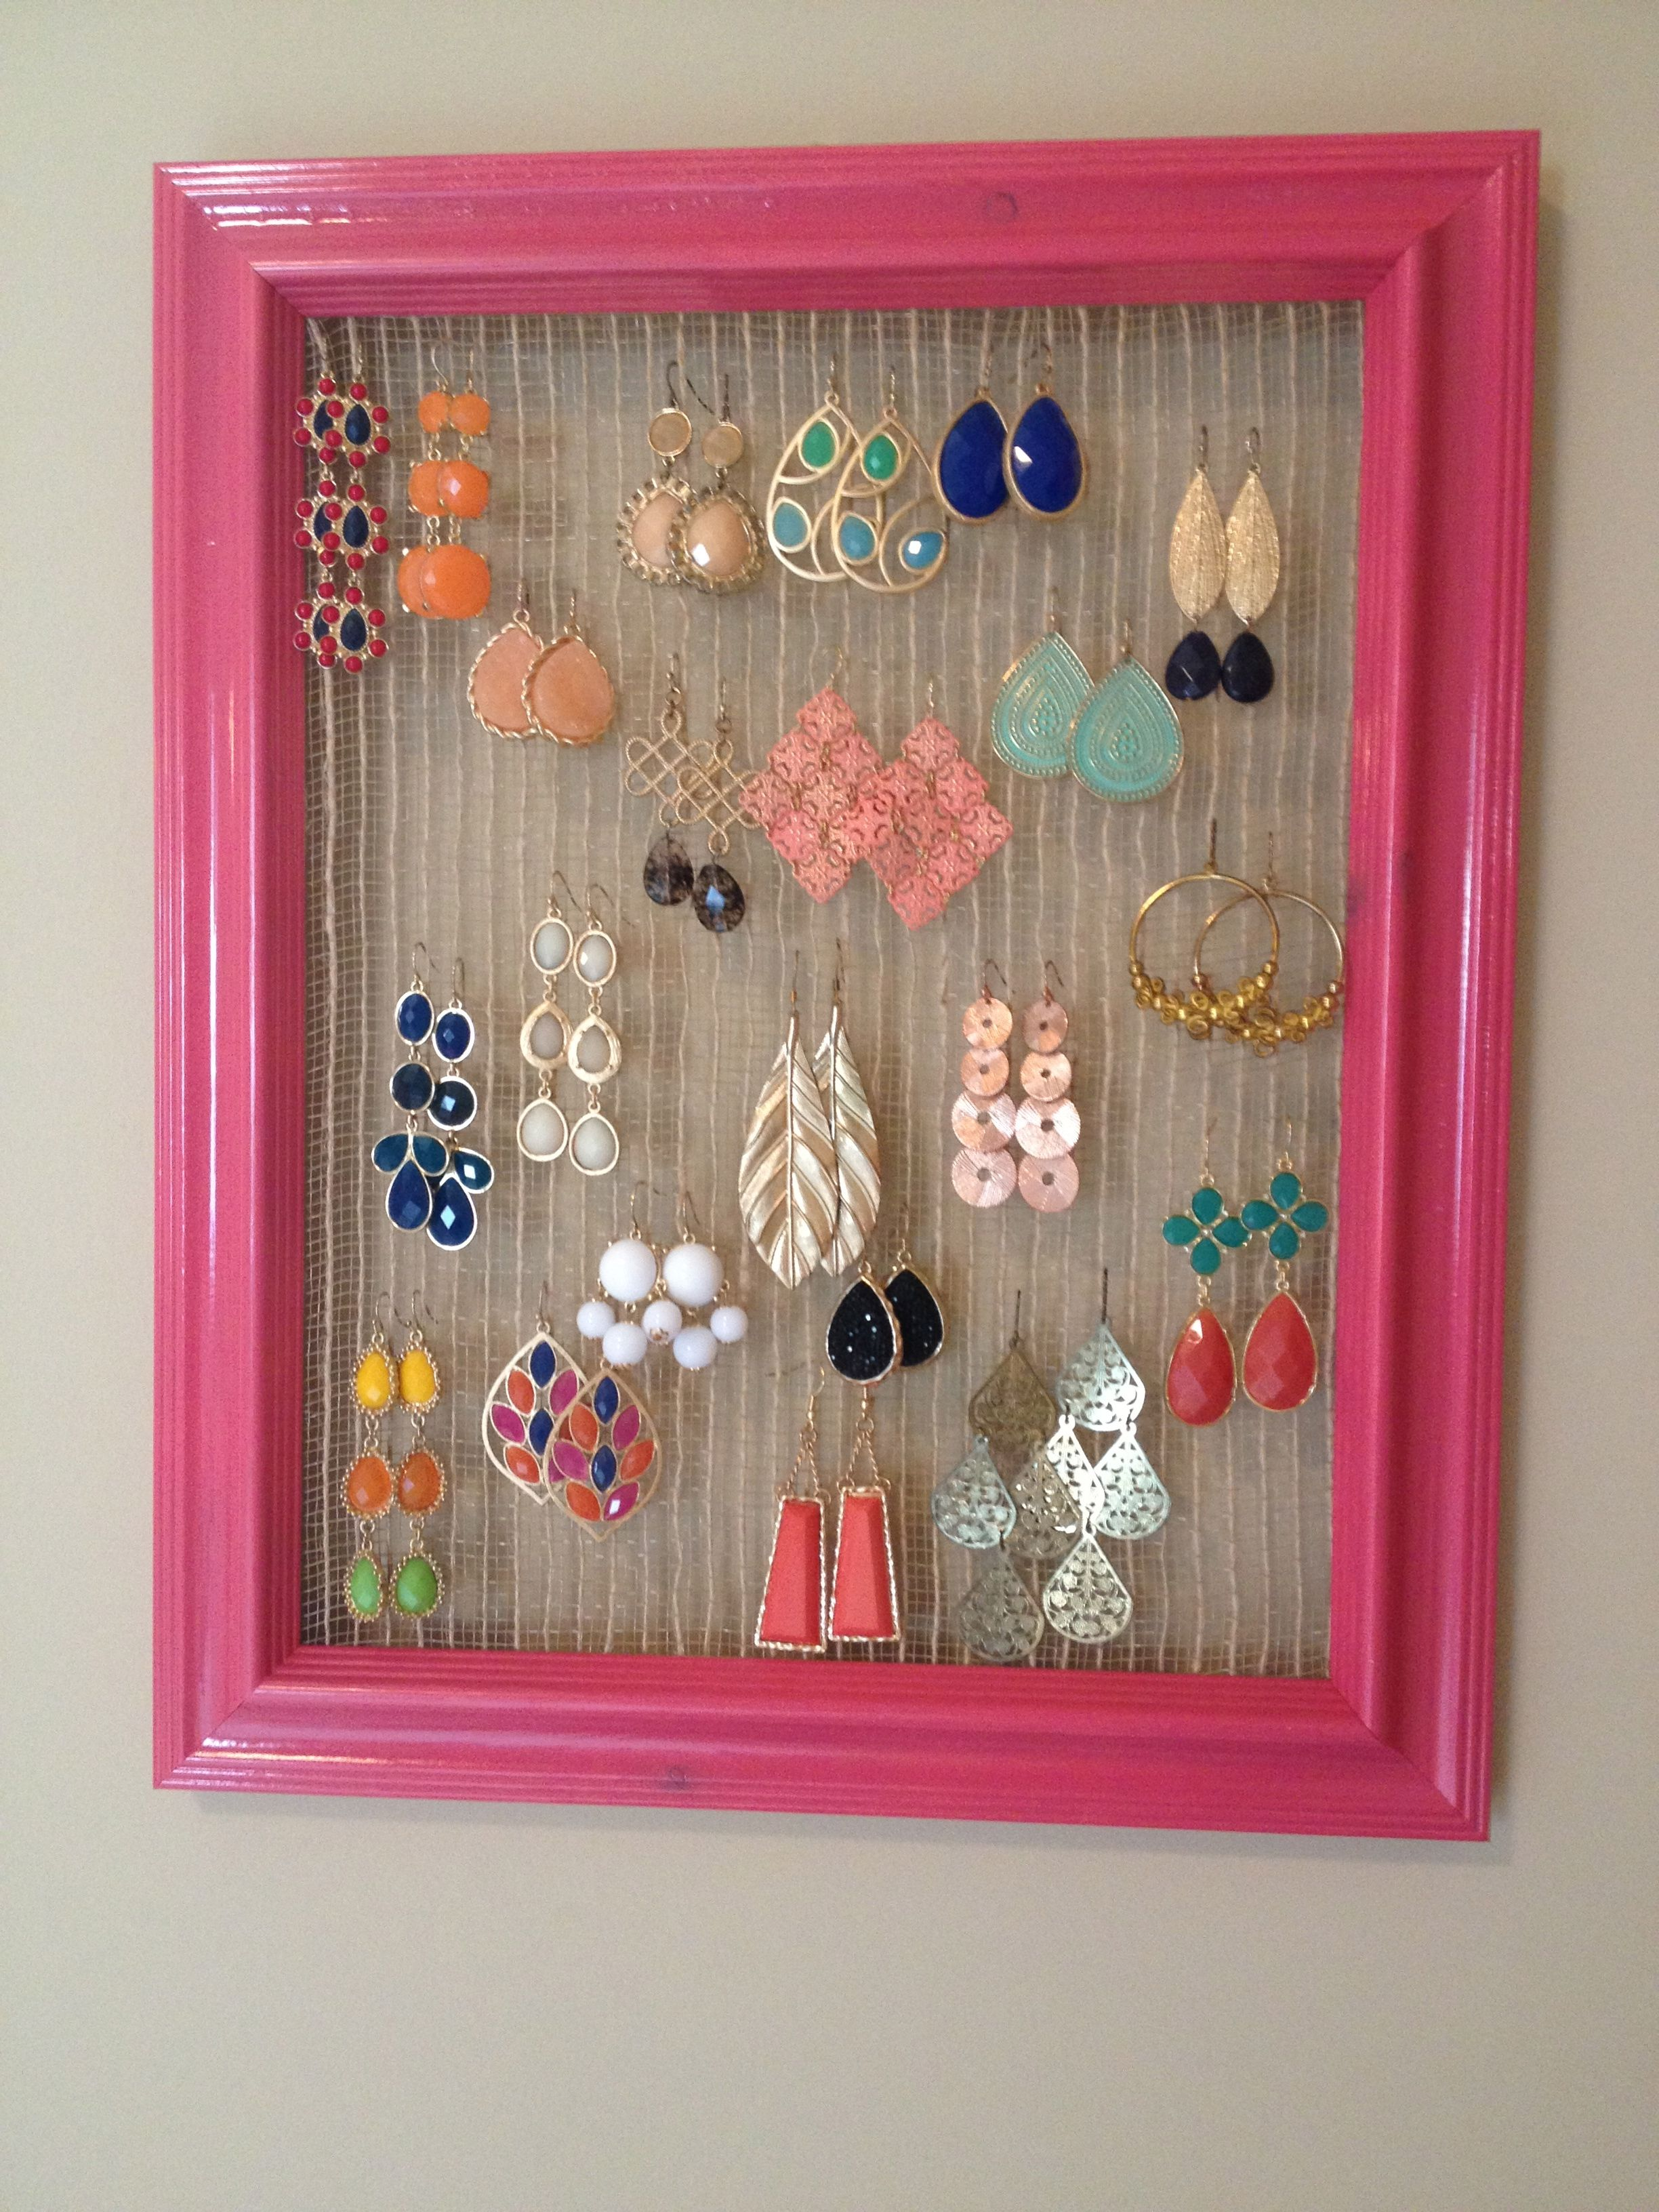 Mesh Earring Holder : earring, holder, Earring, Holder, Holder,, Crafts,